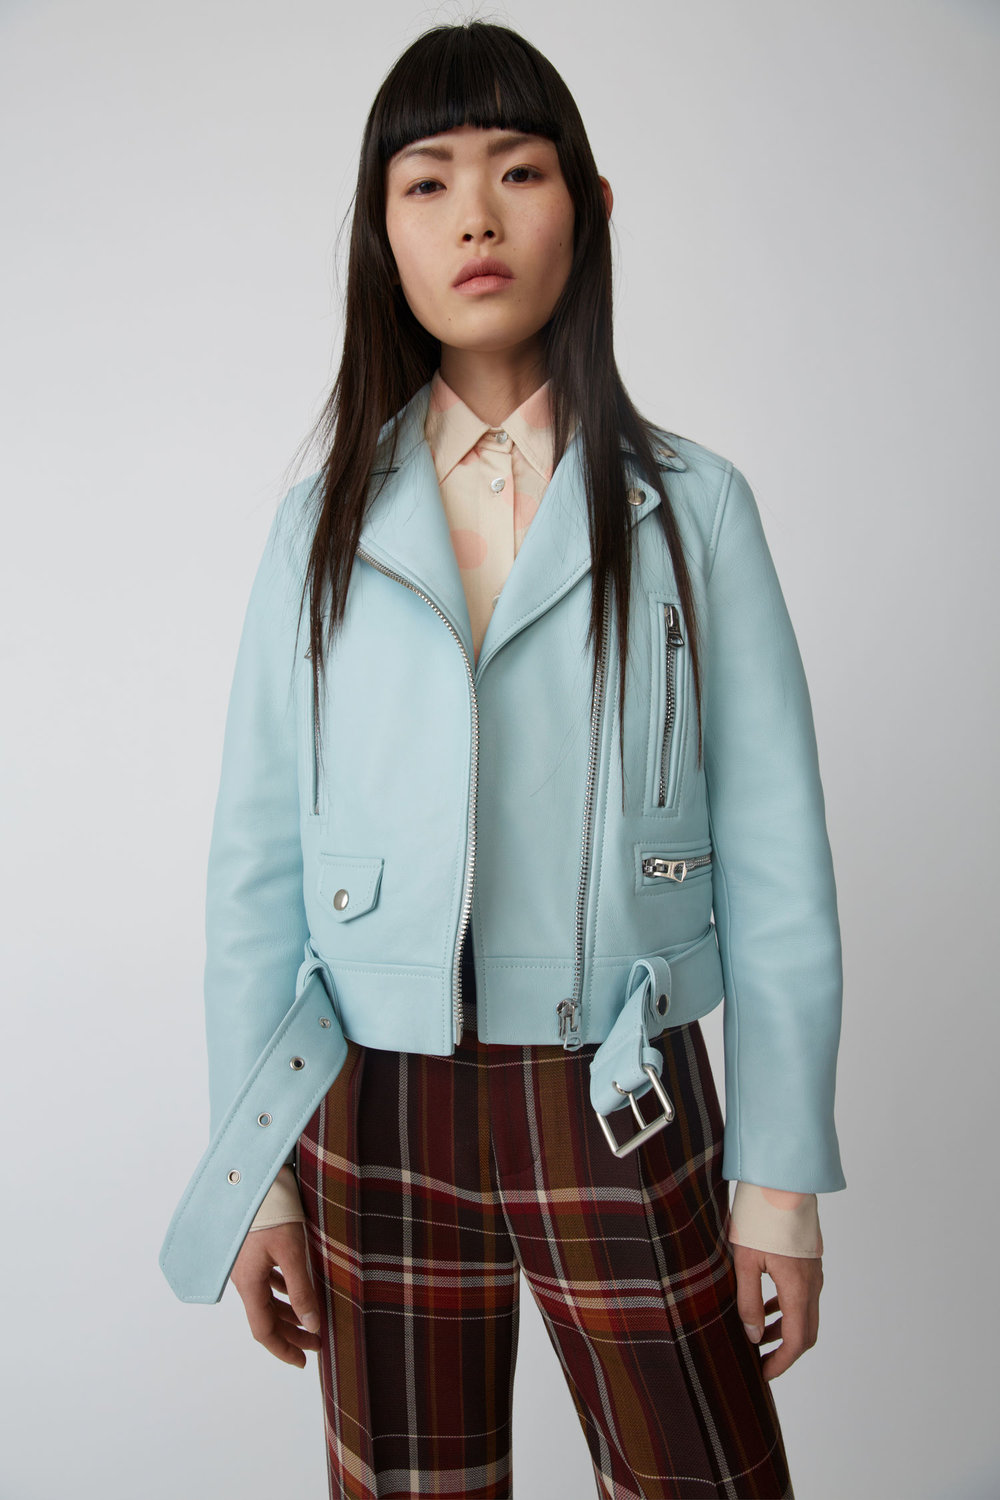 Acne Studios Motorcycle Jacket, £1200 - There's nothing more ACNE than a pastel green motorcycle jacket. And there's nothing more cool than ACNE. Put two and two together and you'll get four…as in we're crazy for this stand out leather piece.